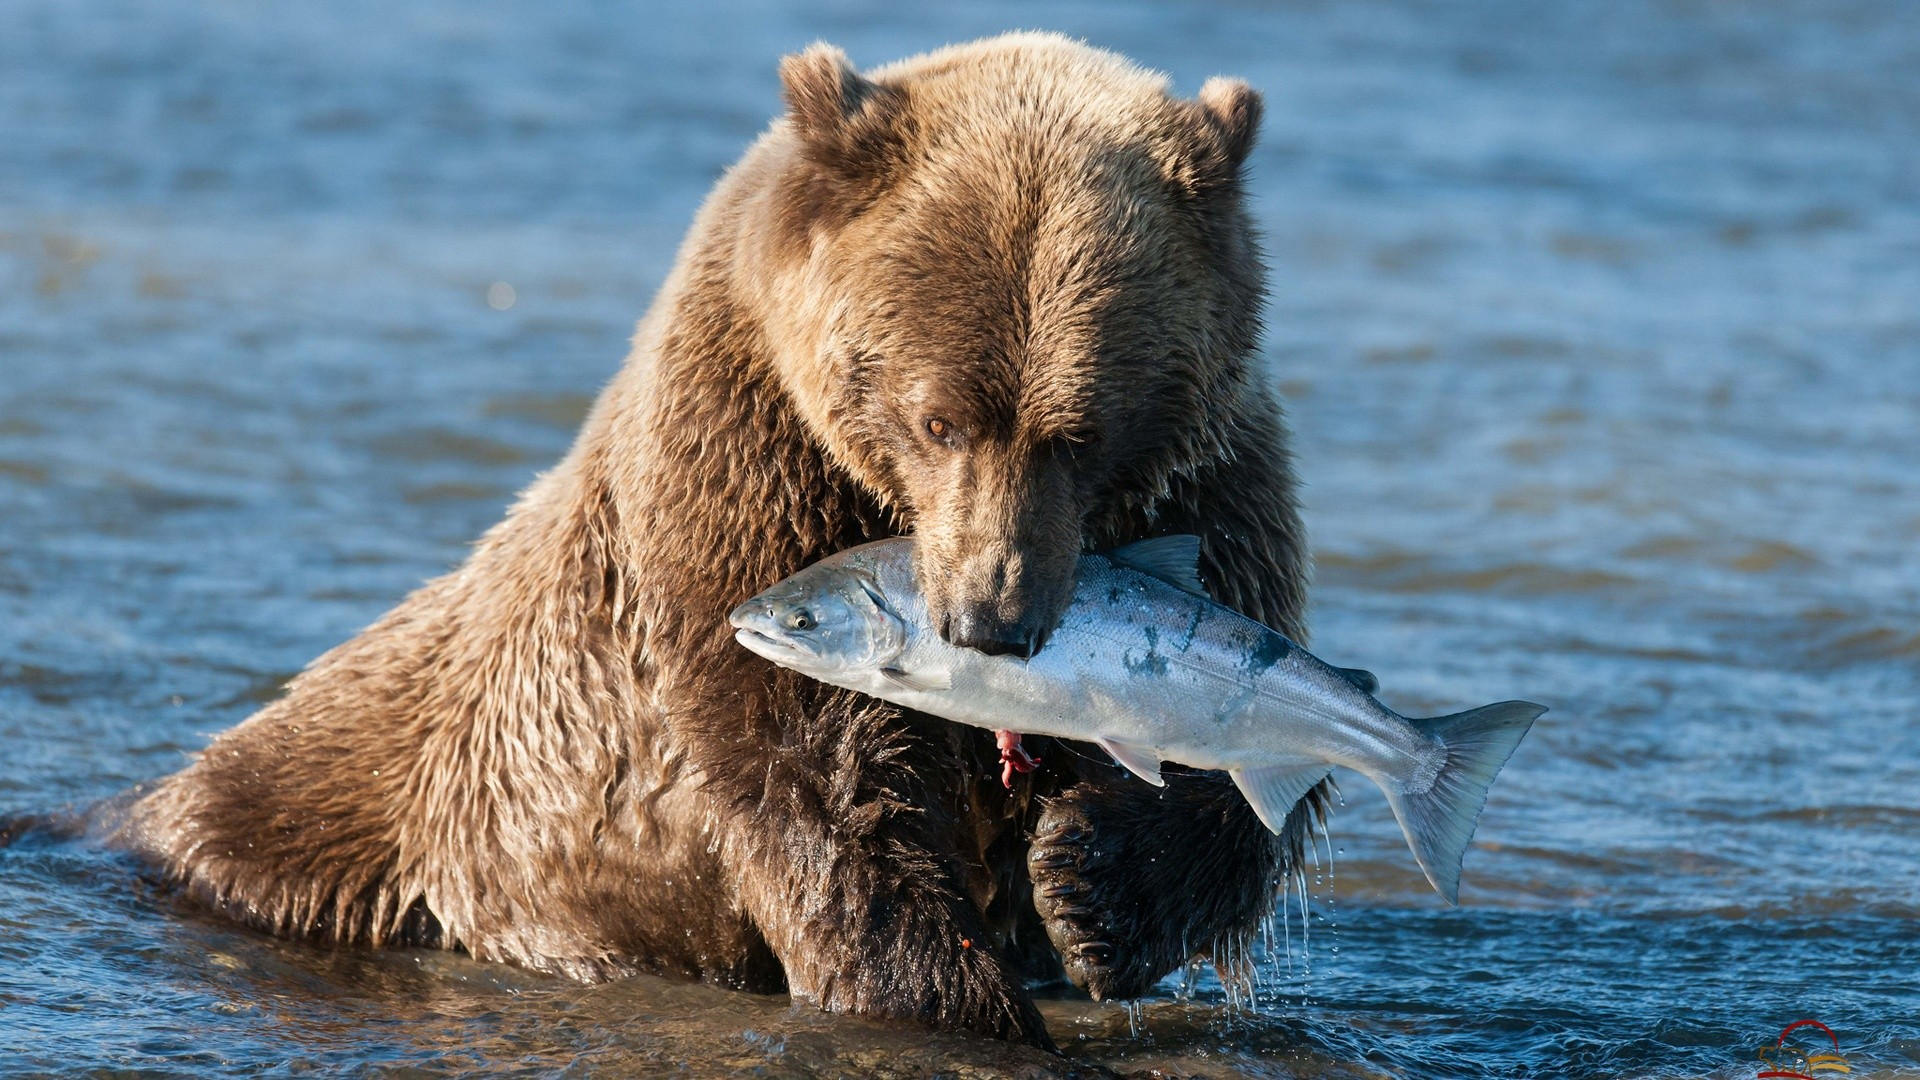 Bear grizzly bear fish wallpaper 1920x1080 120920 for Bear catching fish